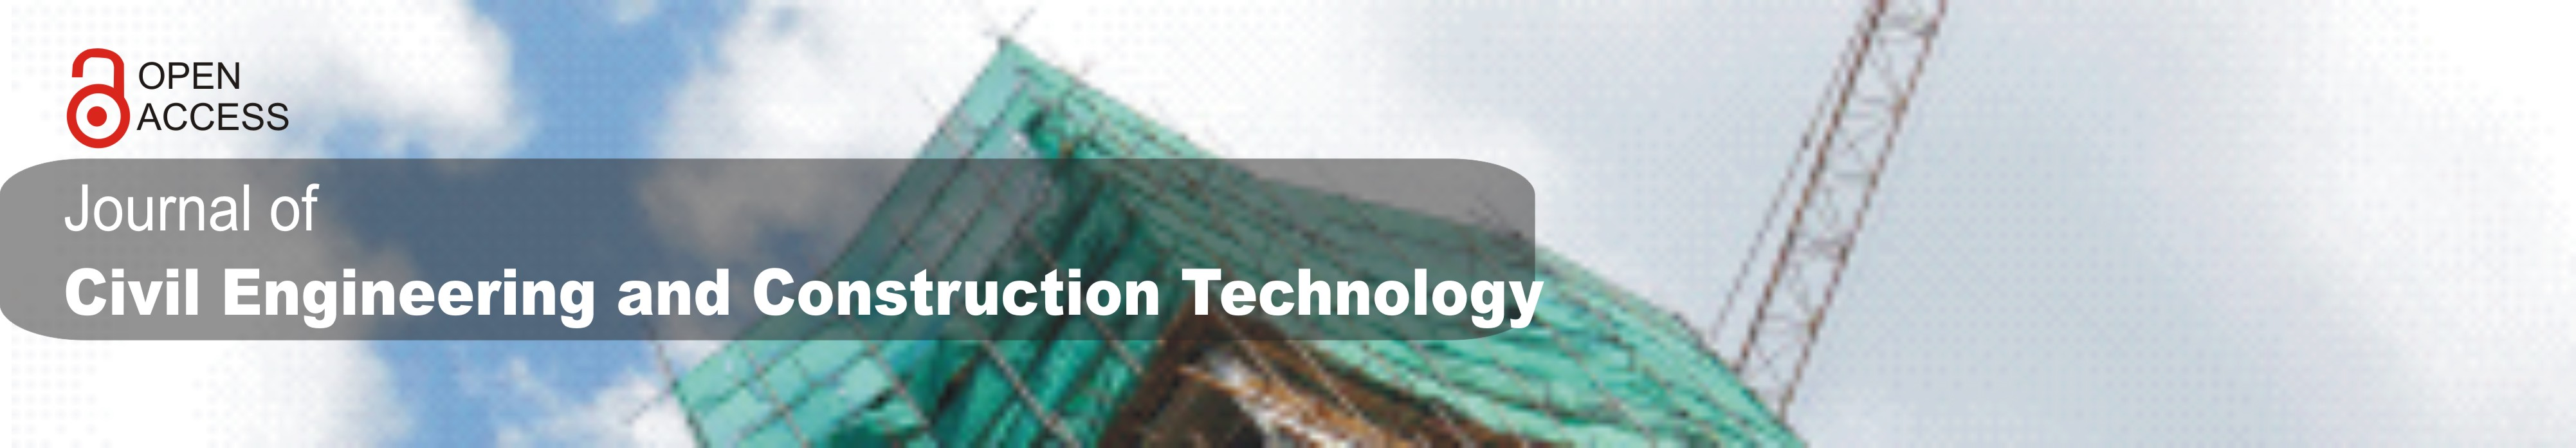 Journal of Civil Engineering and Construction Technology